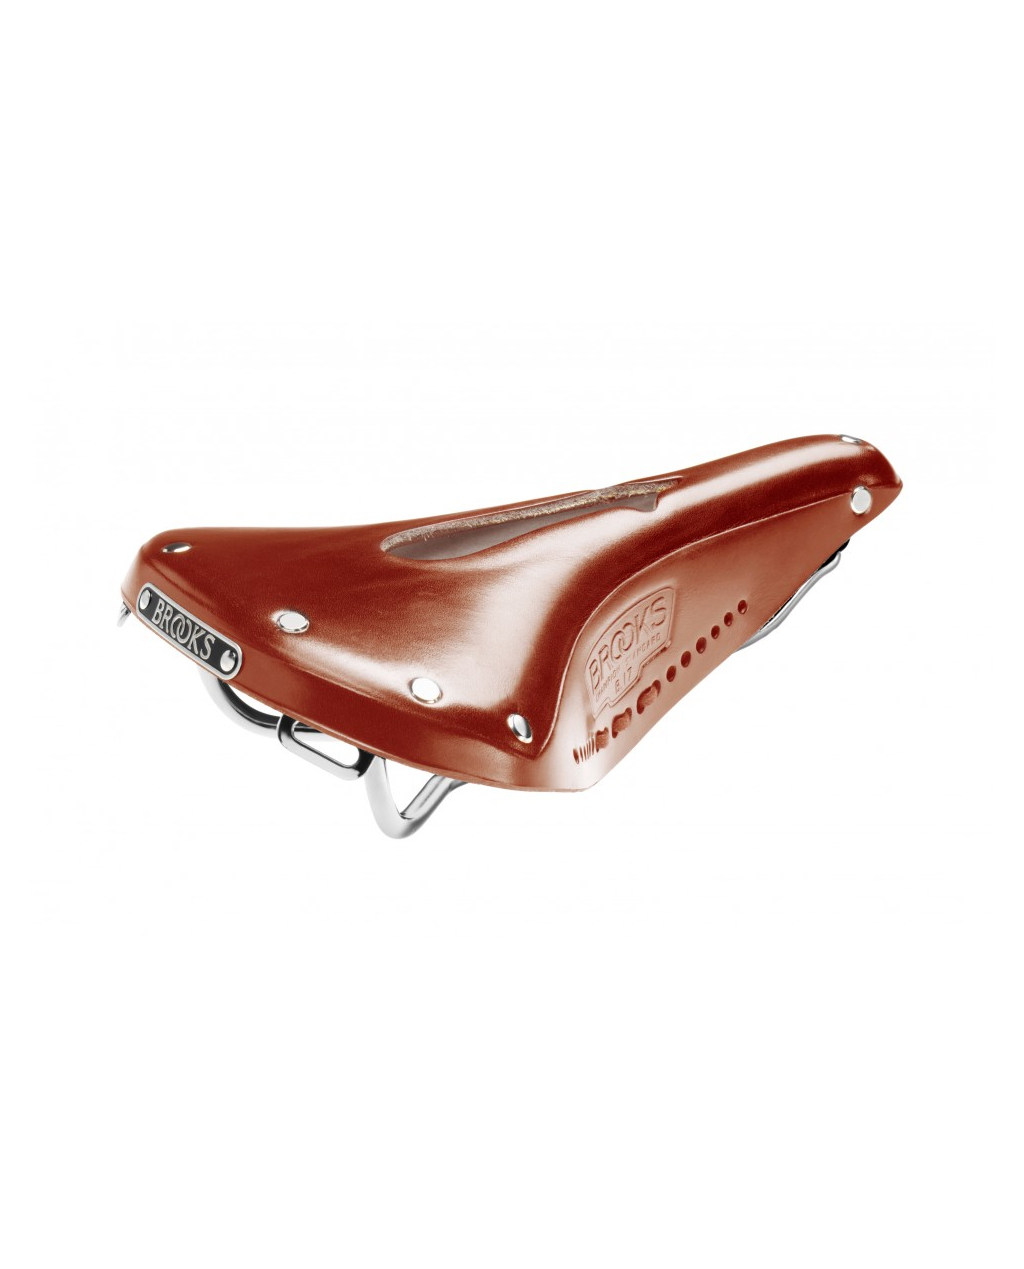 Brooks B17S Imperial - Honey